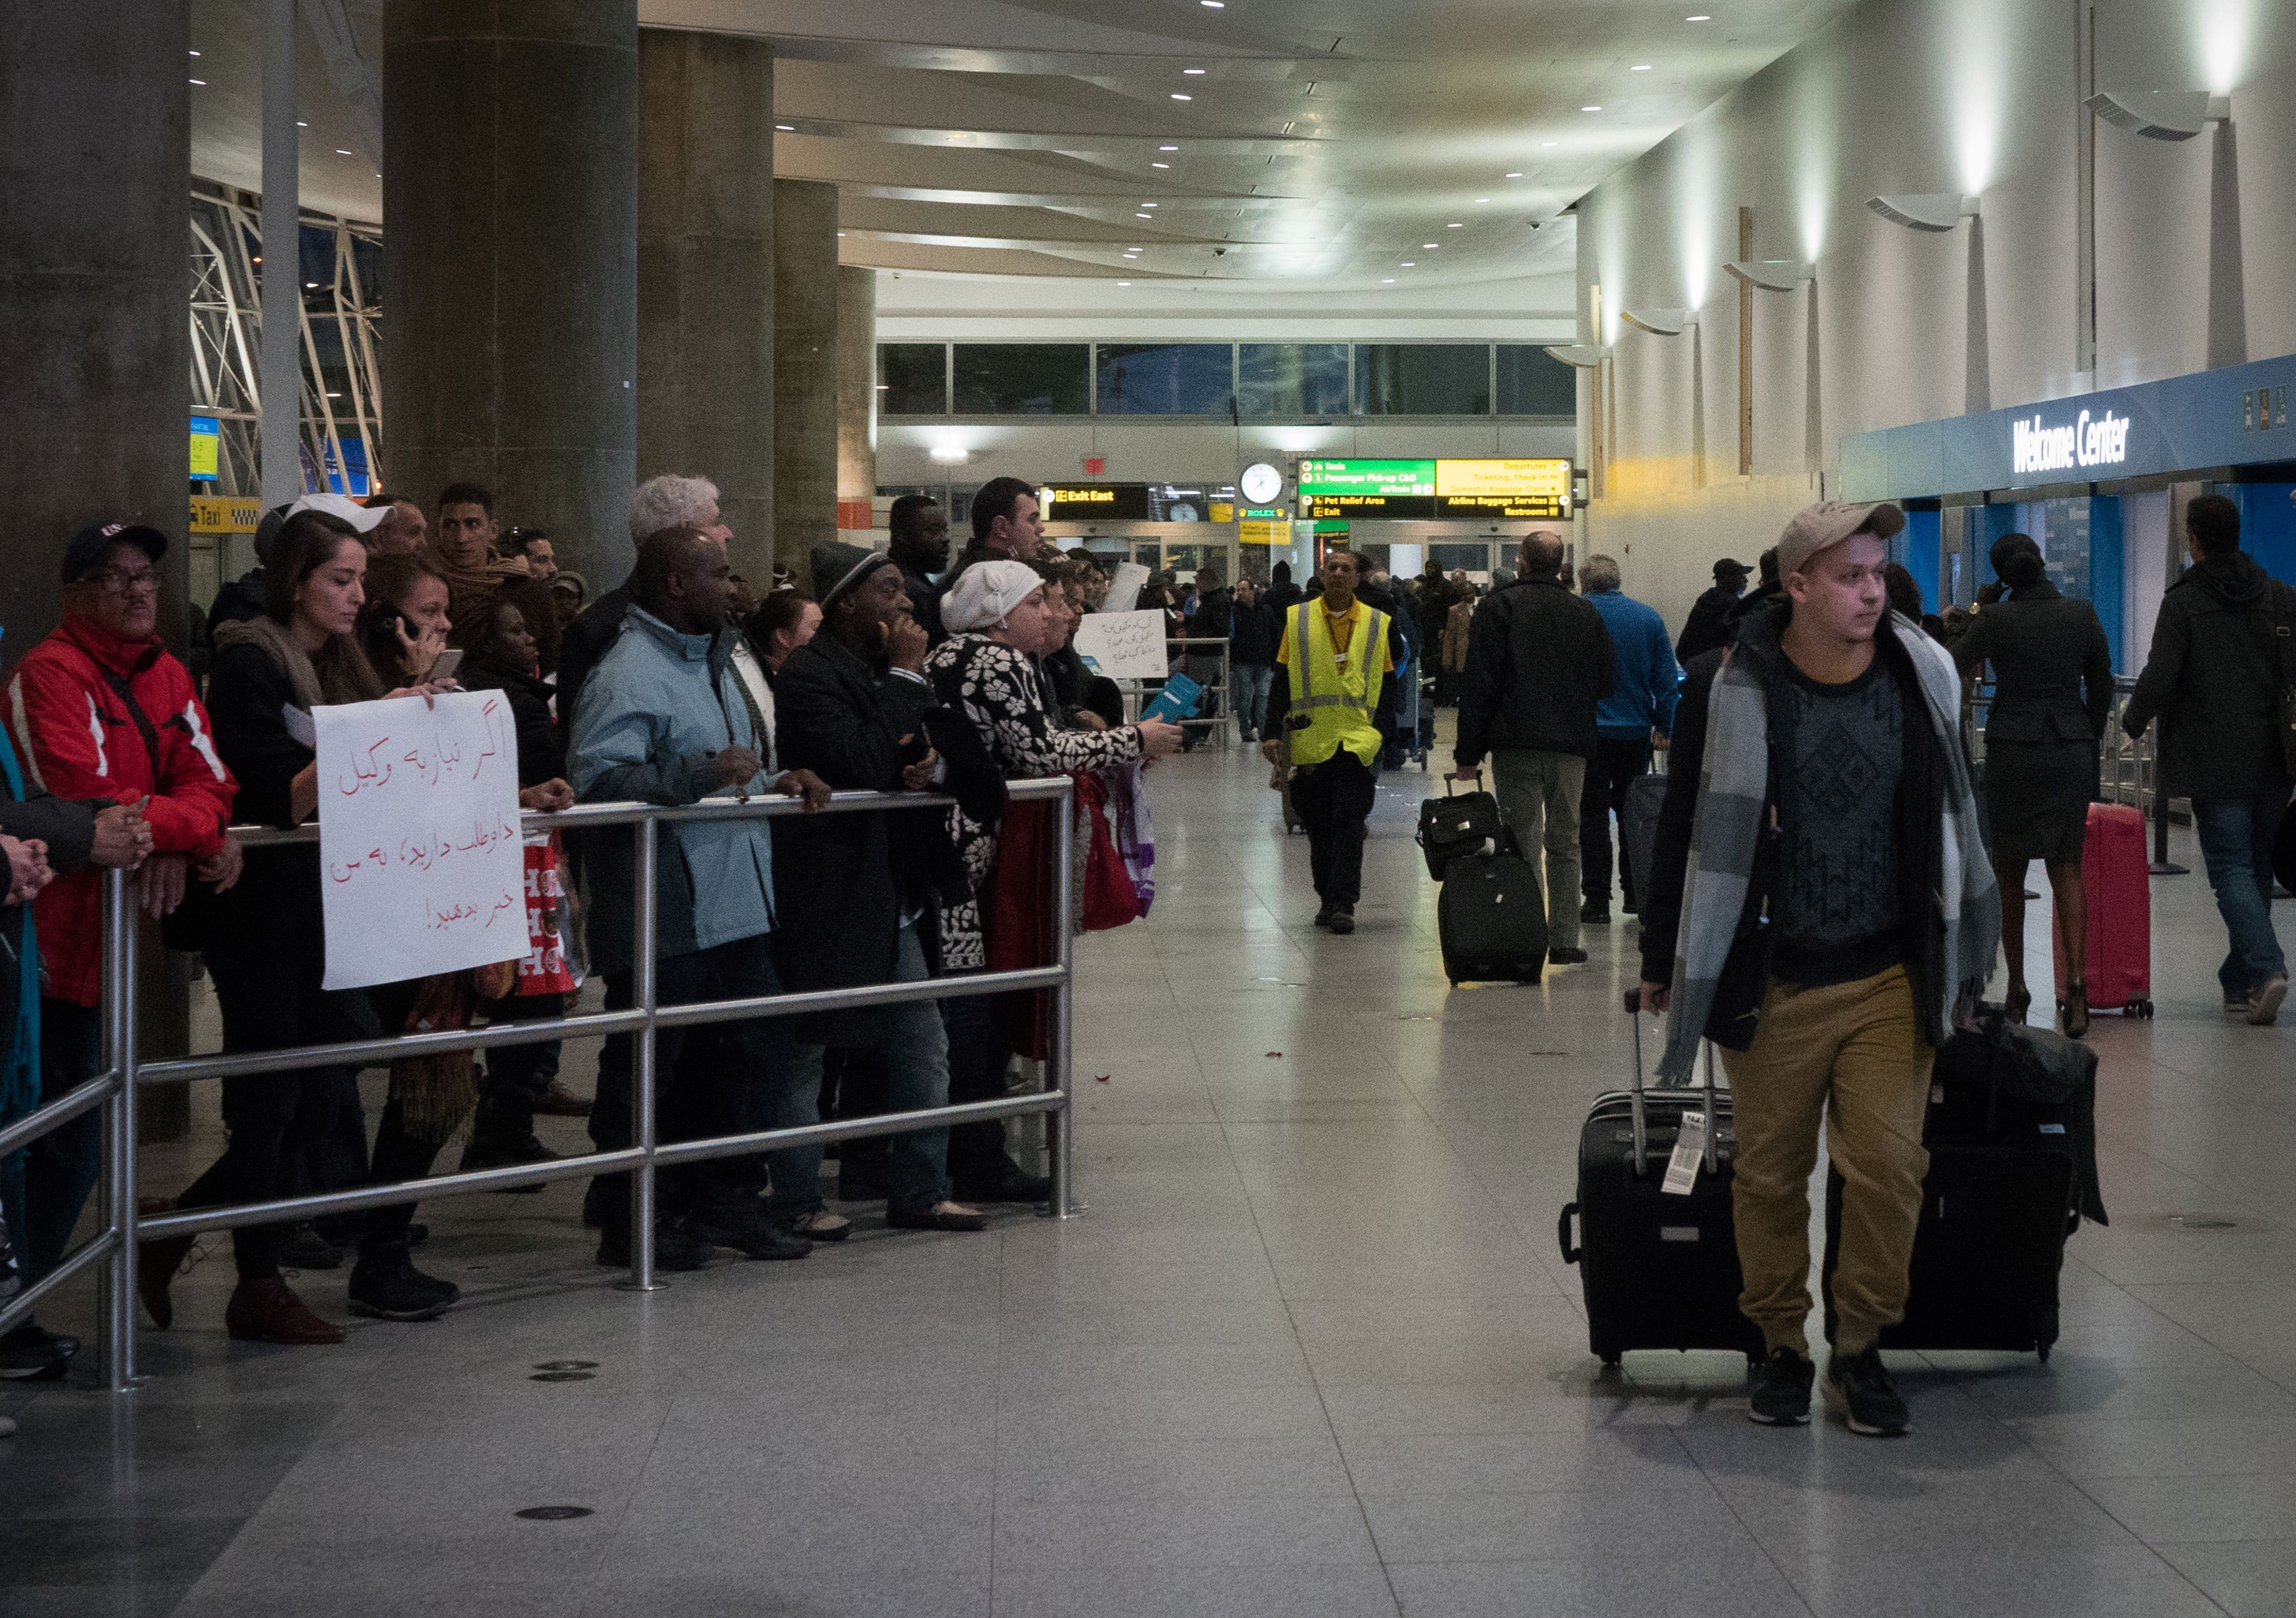 A volunteer holds up a sign asking if anyone needs a lawyer at JFK International Airport's Terminal 4 are on hand to work with people that may have been detained from the seven countries under President Donald Trump's Executive Order, February 4, 2017 in New York. / AFP / Bryan R. Smith        (Photo credit should read BRYAN R. SMITH/AFP/Getty Images)